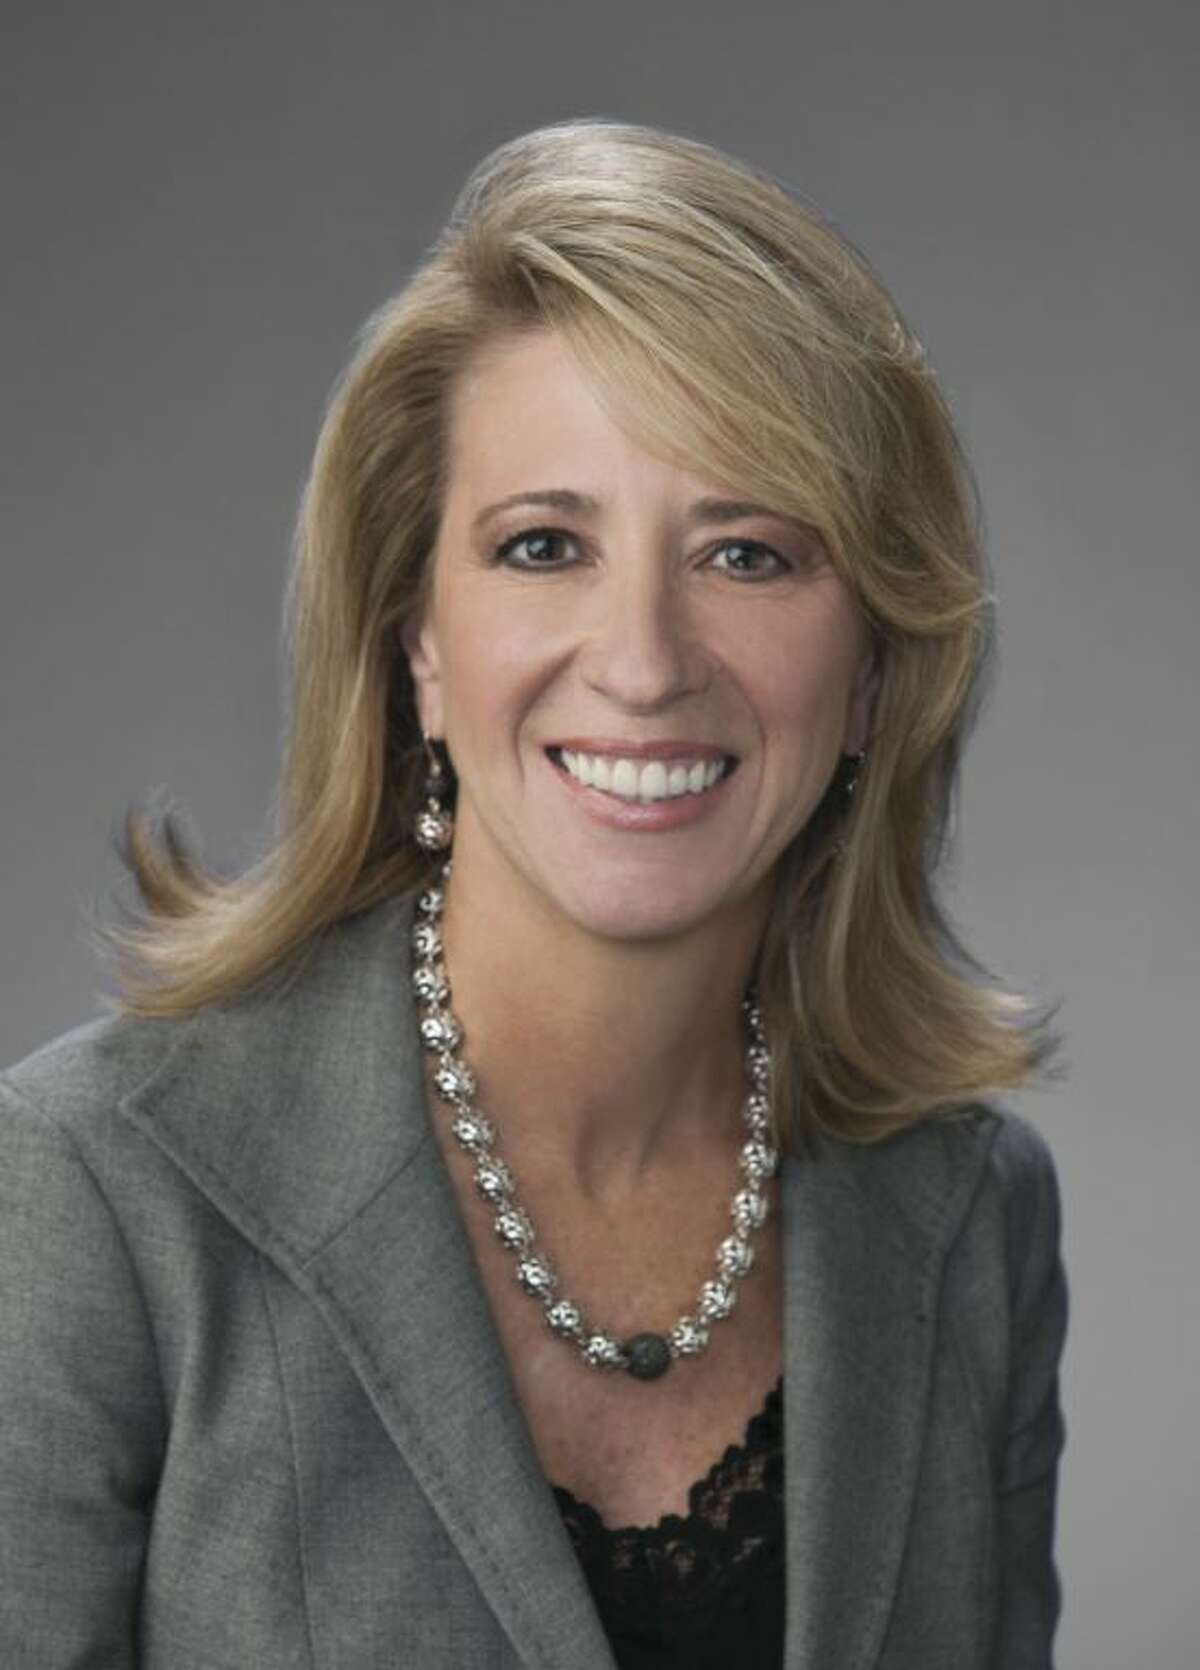 Sherri W. Schugart,President and CEO of Hines REIT.